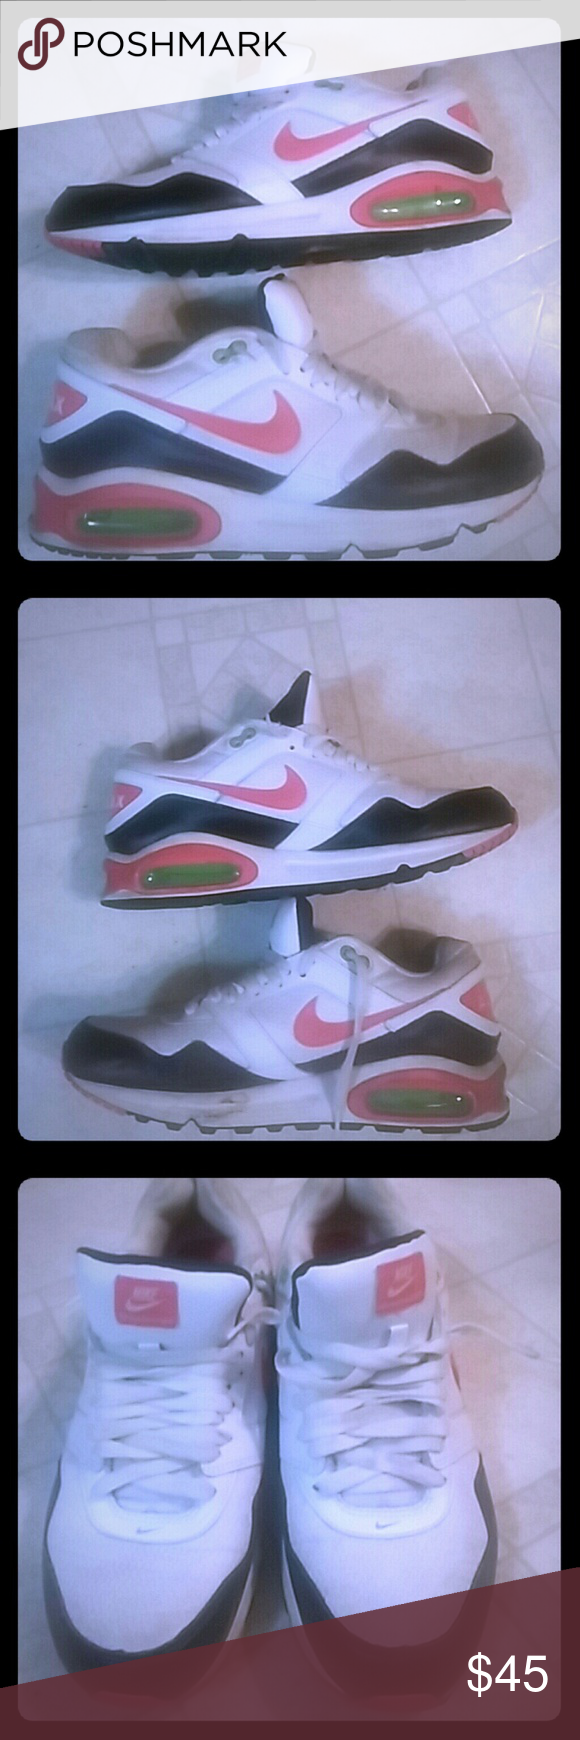 NIKE AIR MAX NAVIGATE WMNS RUNNING SHOES 454249 11 SZ 11 pre-cleaning. Will Clean and update pics later. Nike Shoes Sneakers